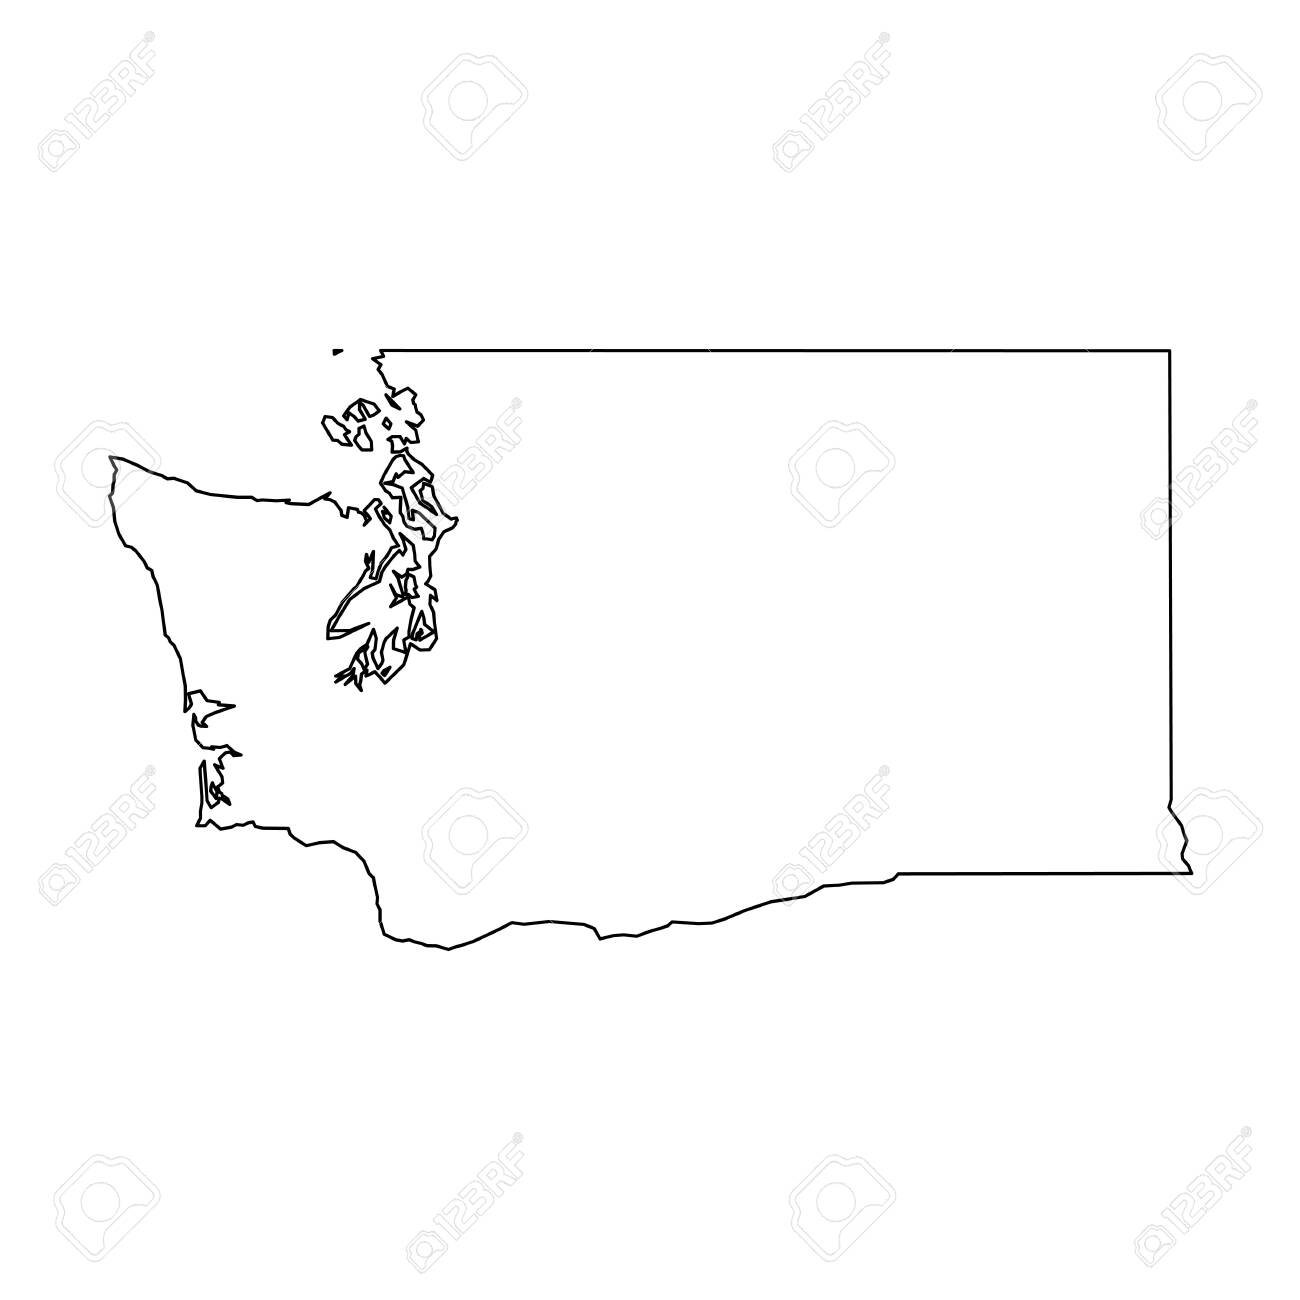 Washington, state of USA - solid black outline map of country area. Simple flat vector illustration. - 124448025